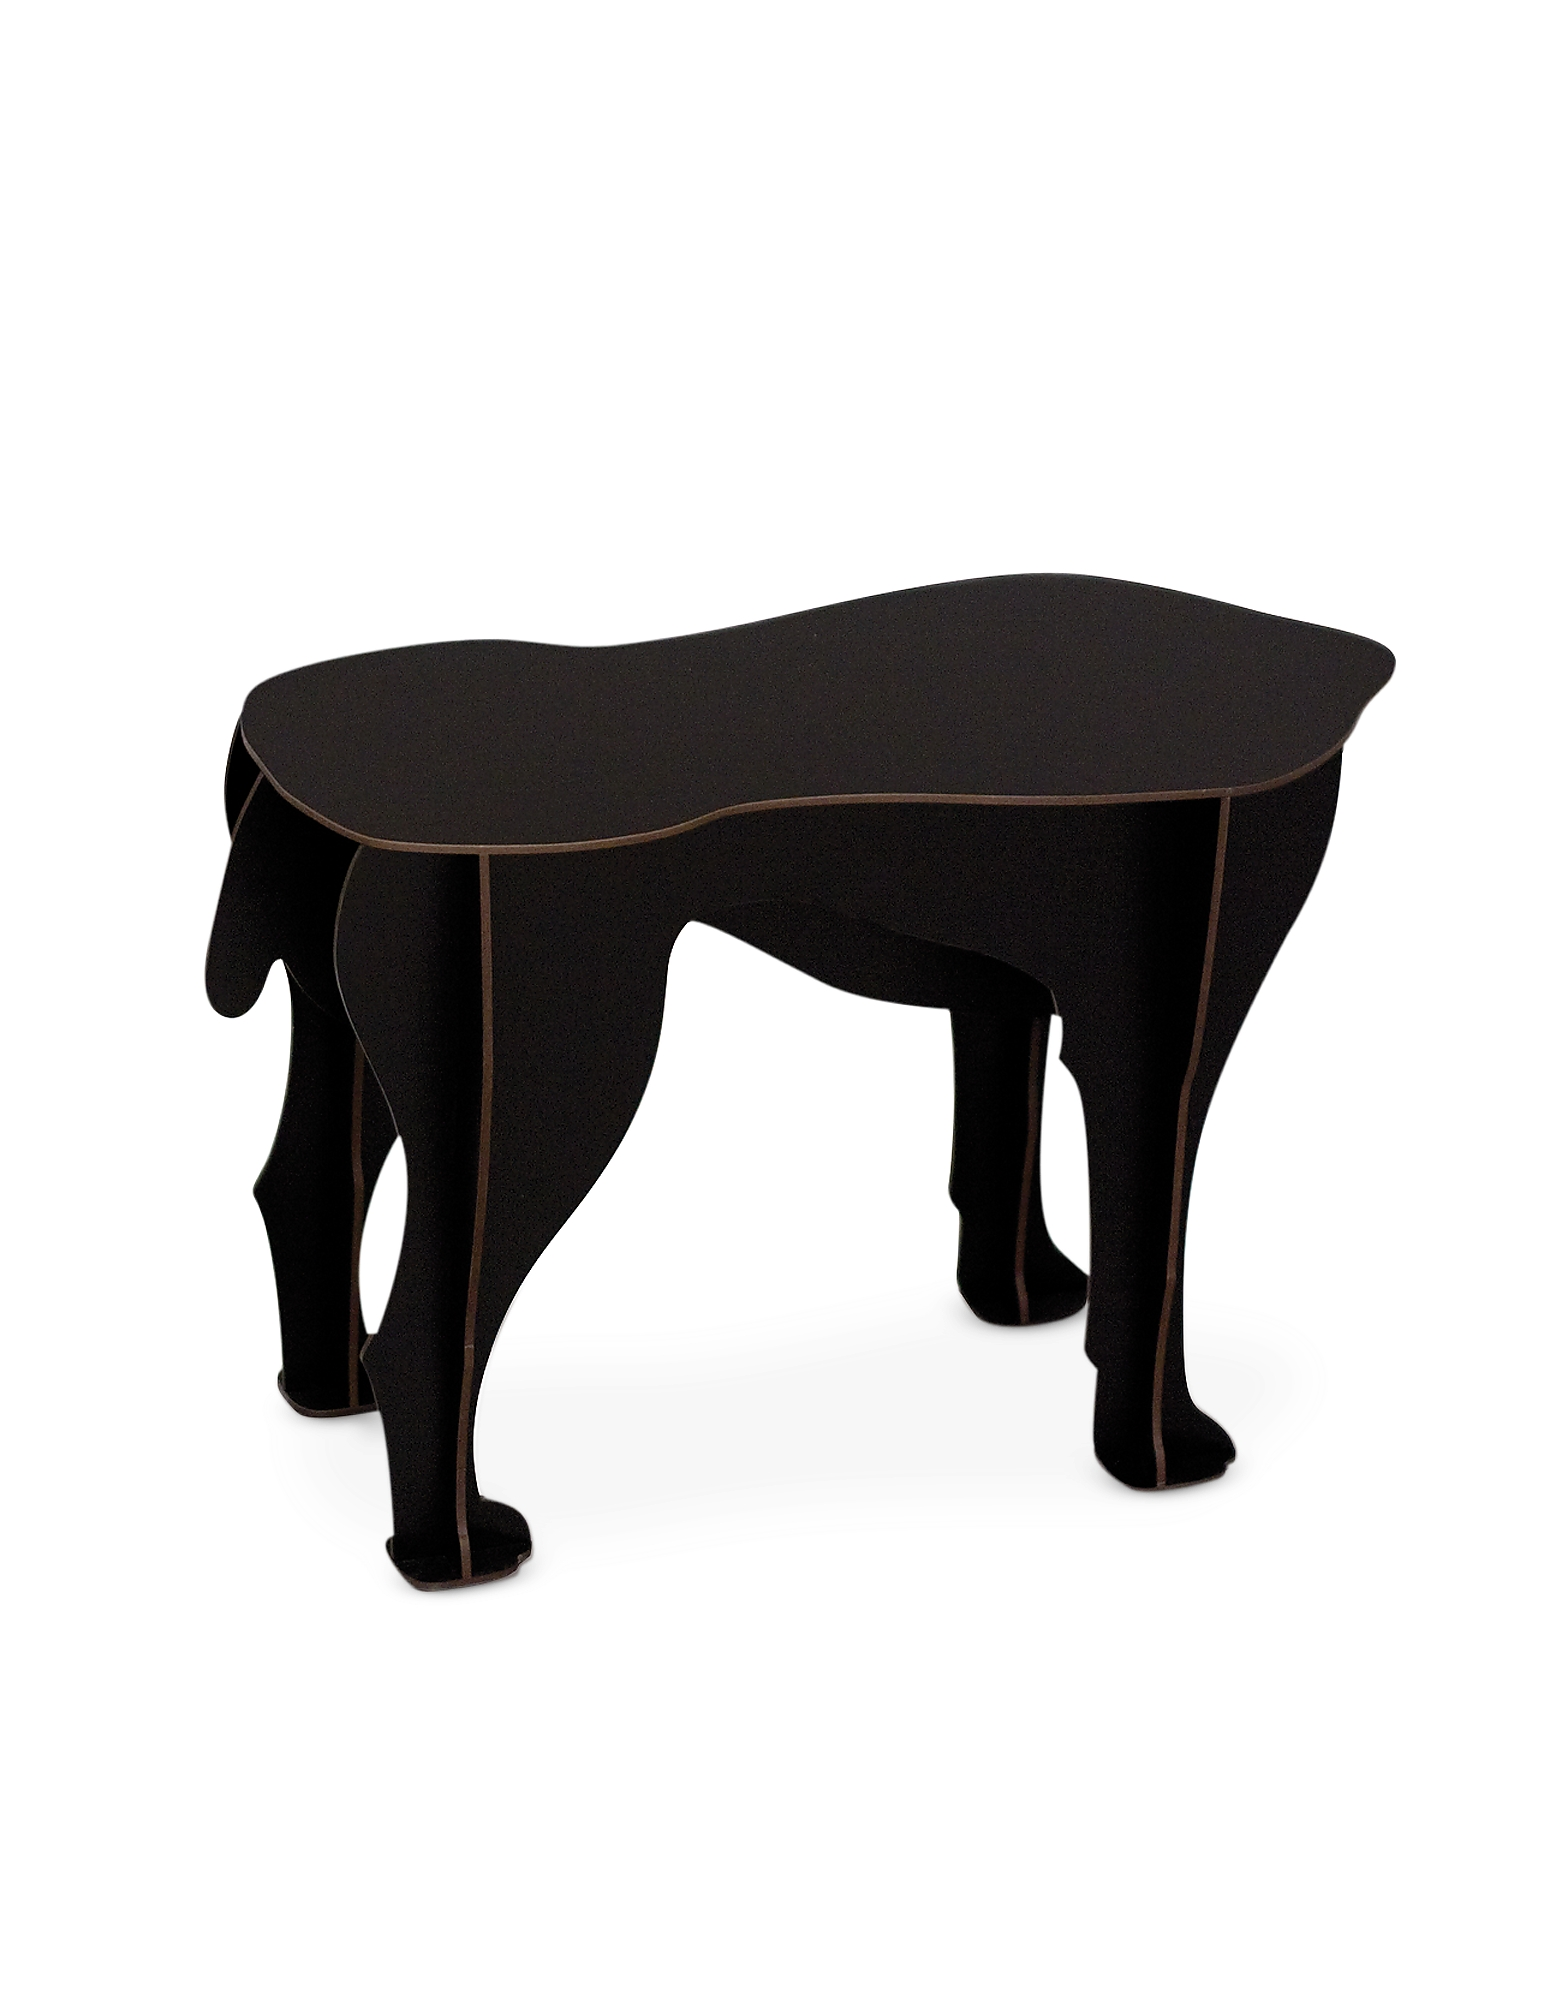 Ibride Decor & Lighting, Sultan - Dog Stool